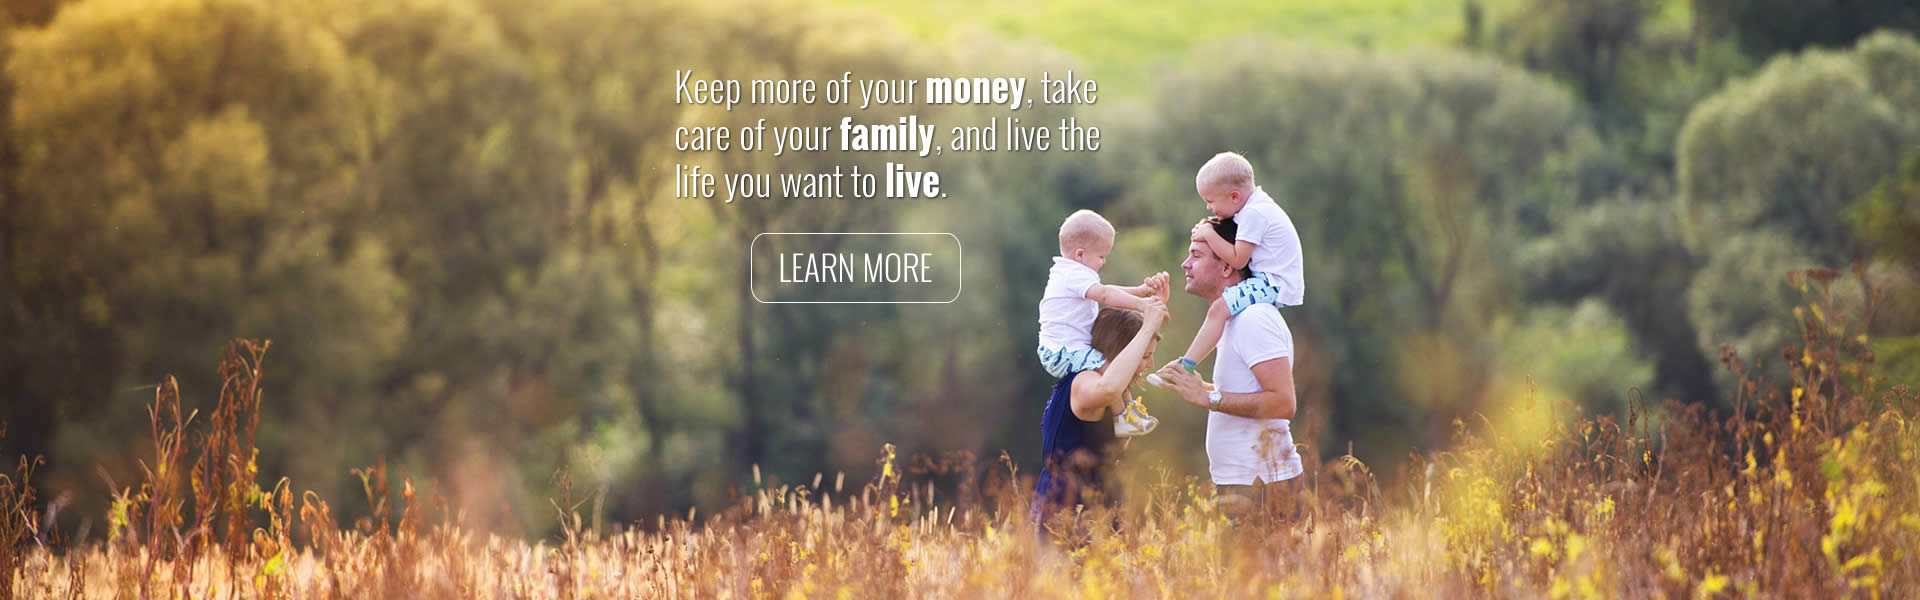 Allan L Johnson Insurance Services - Keep more of your money, take care of your family, live the life you want to live.